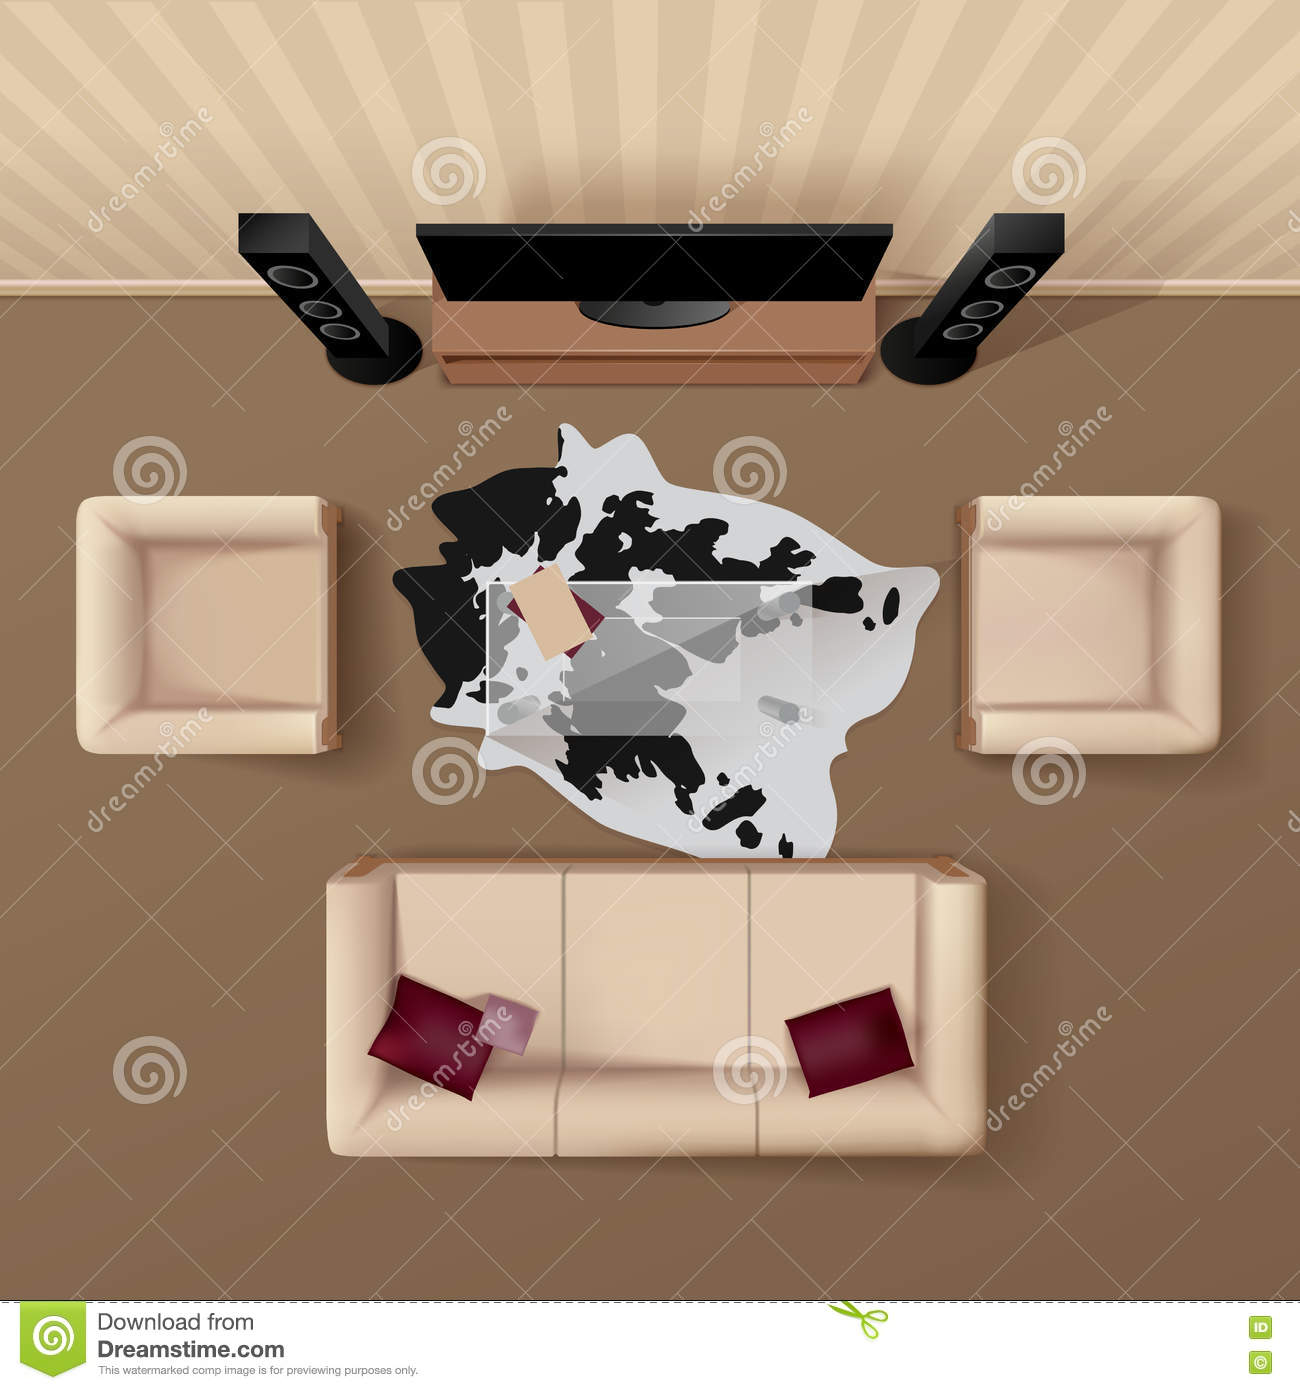 Living room top view realistic image stock vector for 15x15 living room